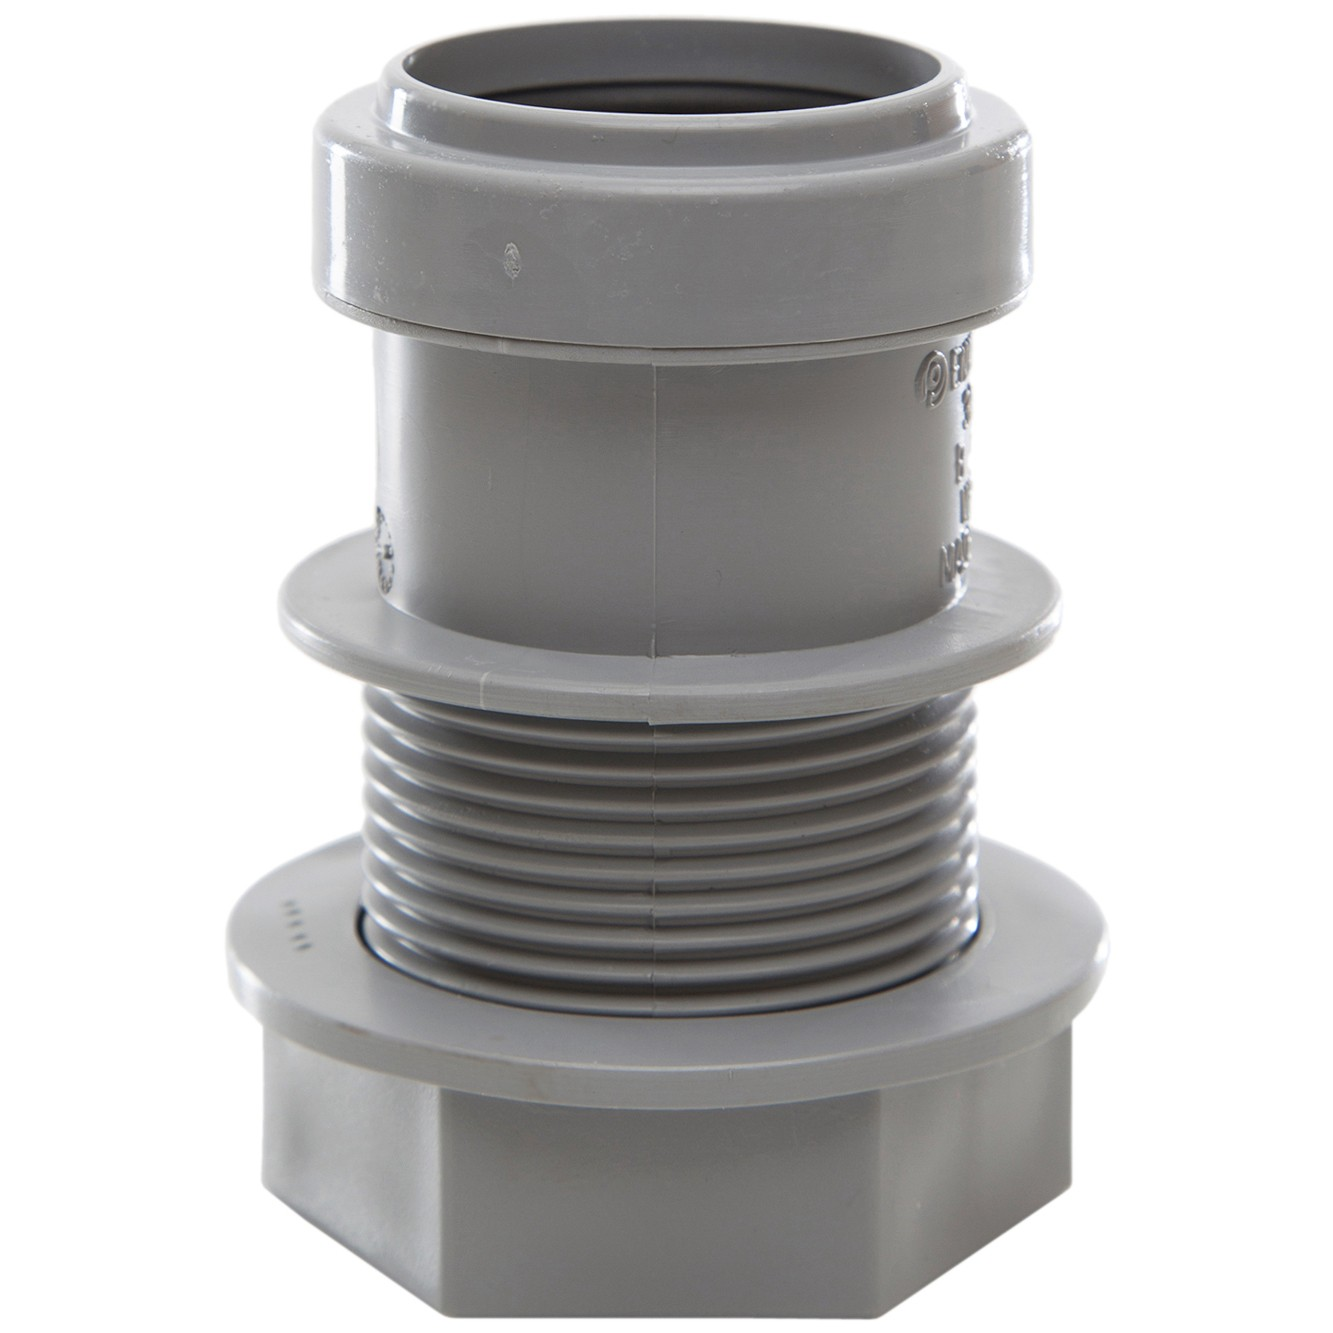 Polypipe 32mm Push Fit Waste Tank Connector - Grey